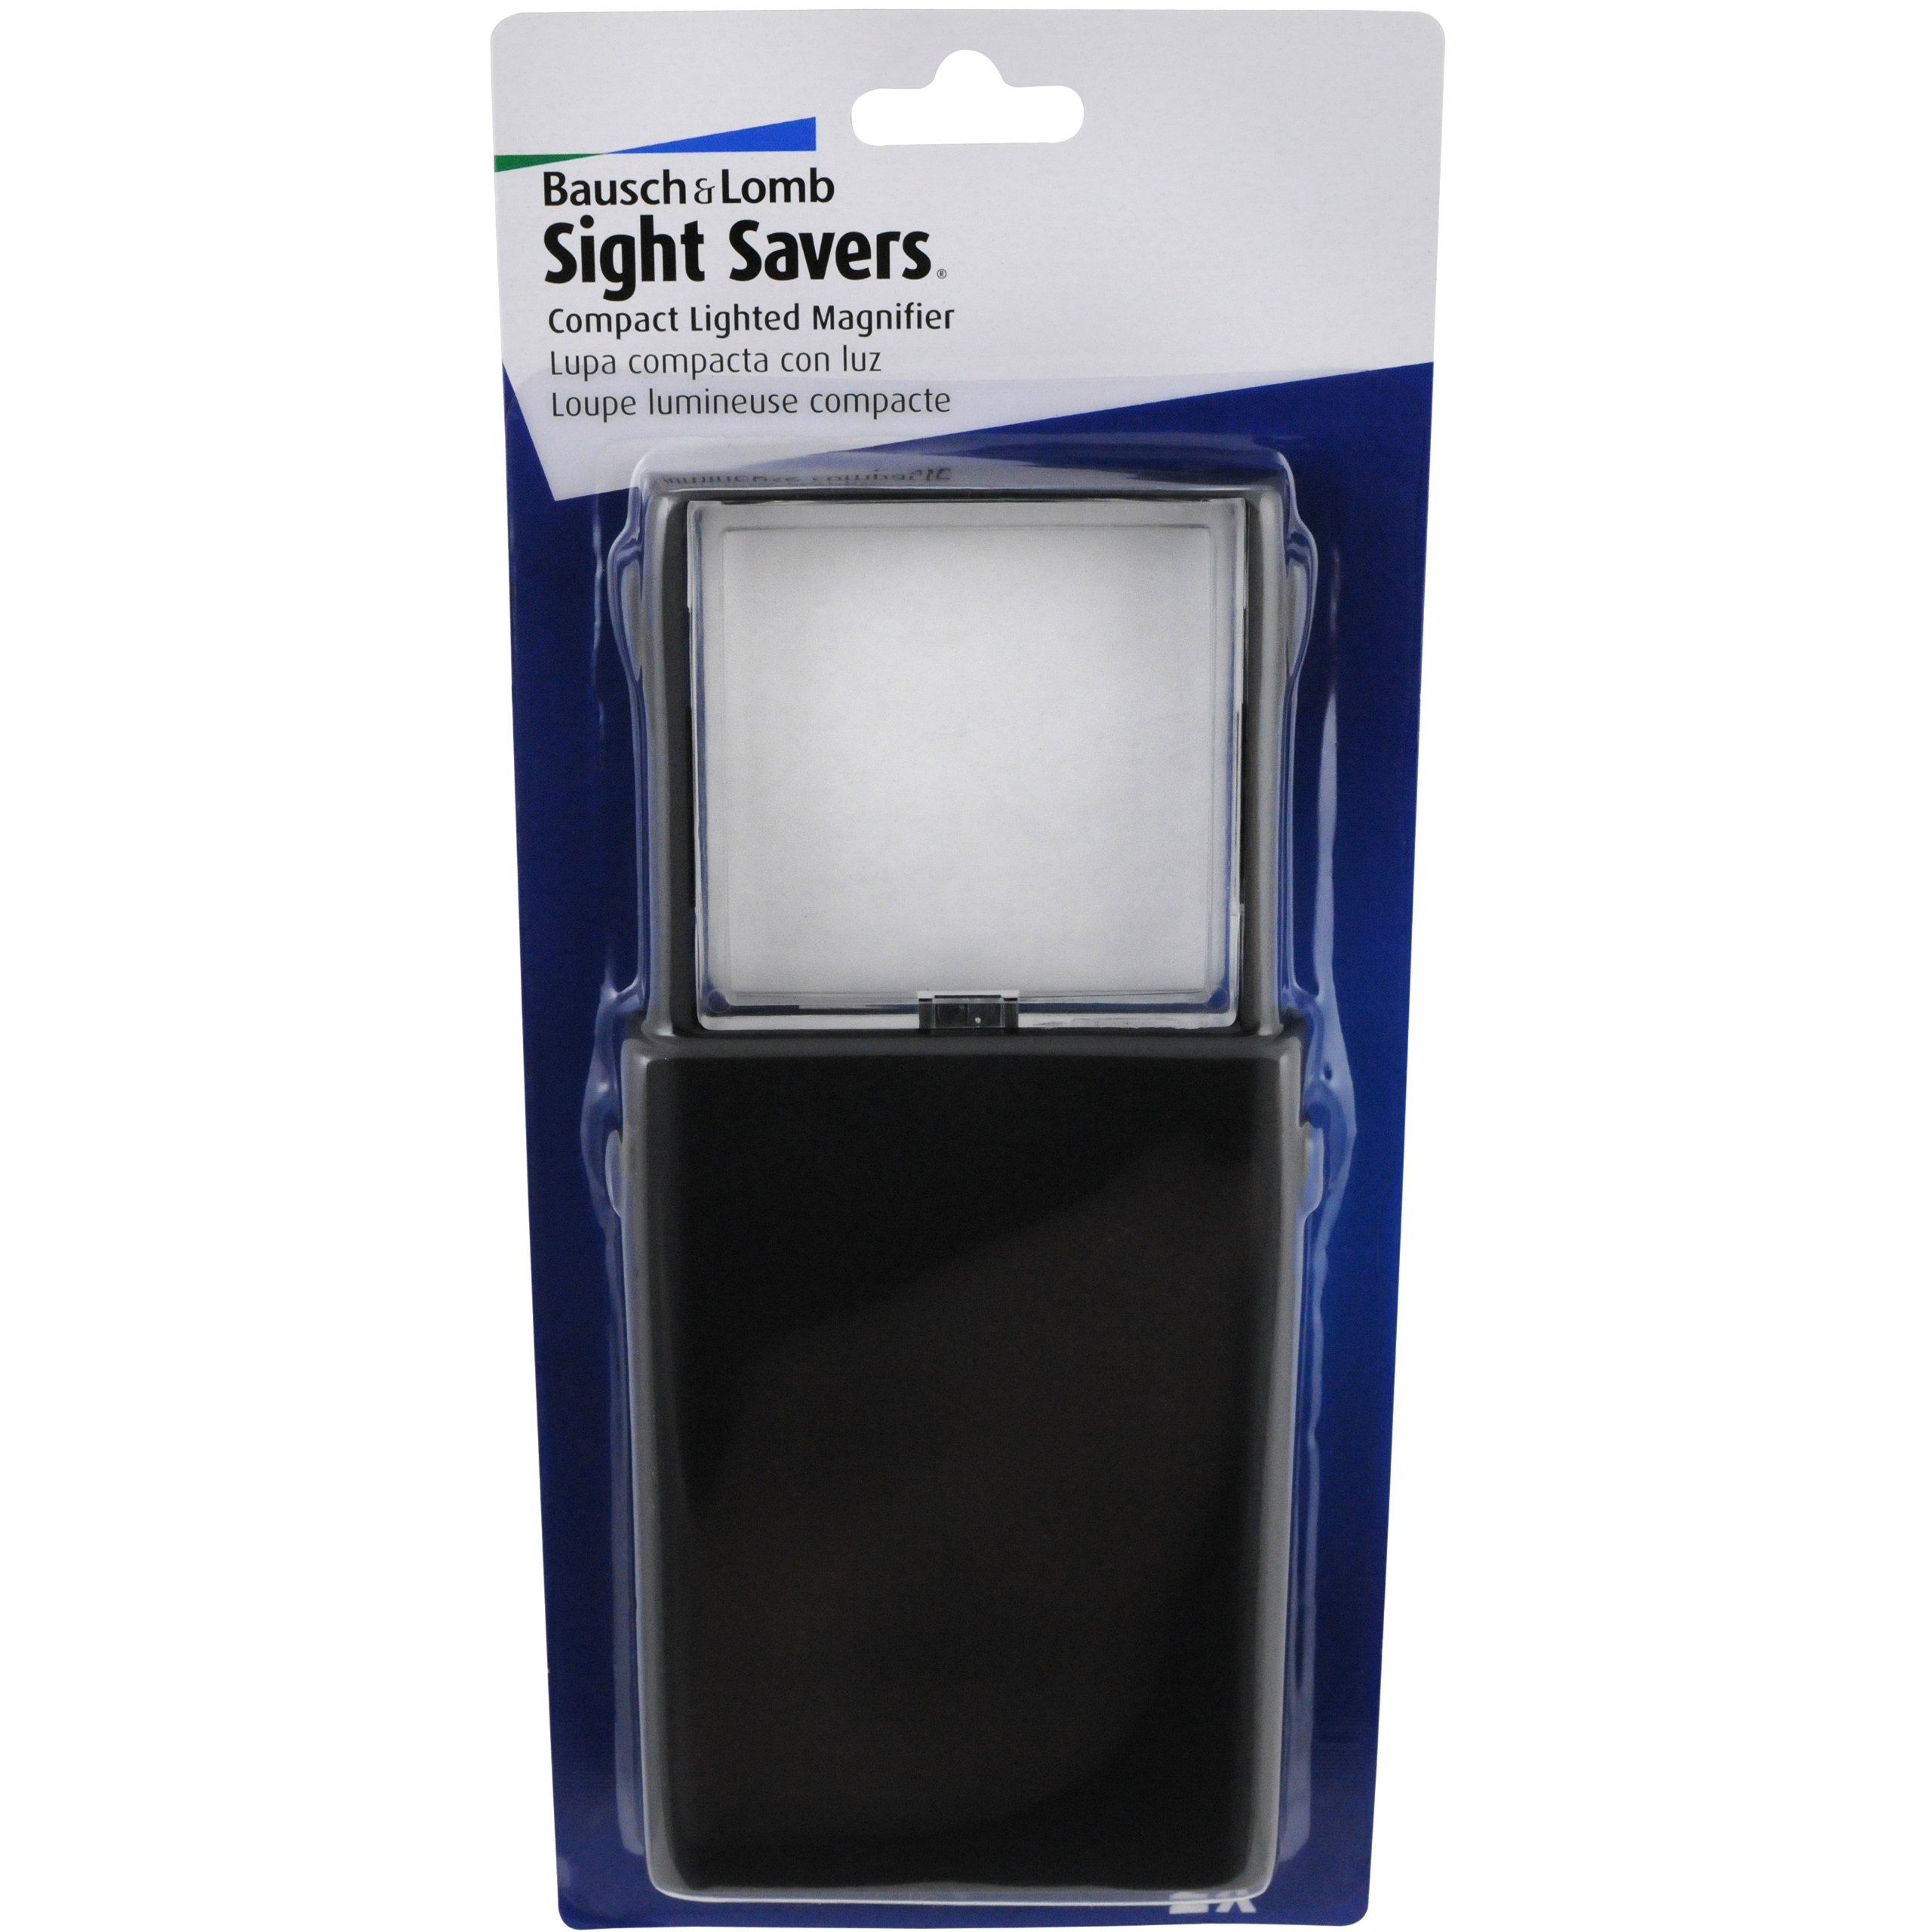 Bausch & Lomb Compact Lighted Magnifier, 2x